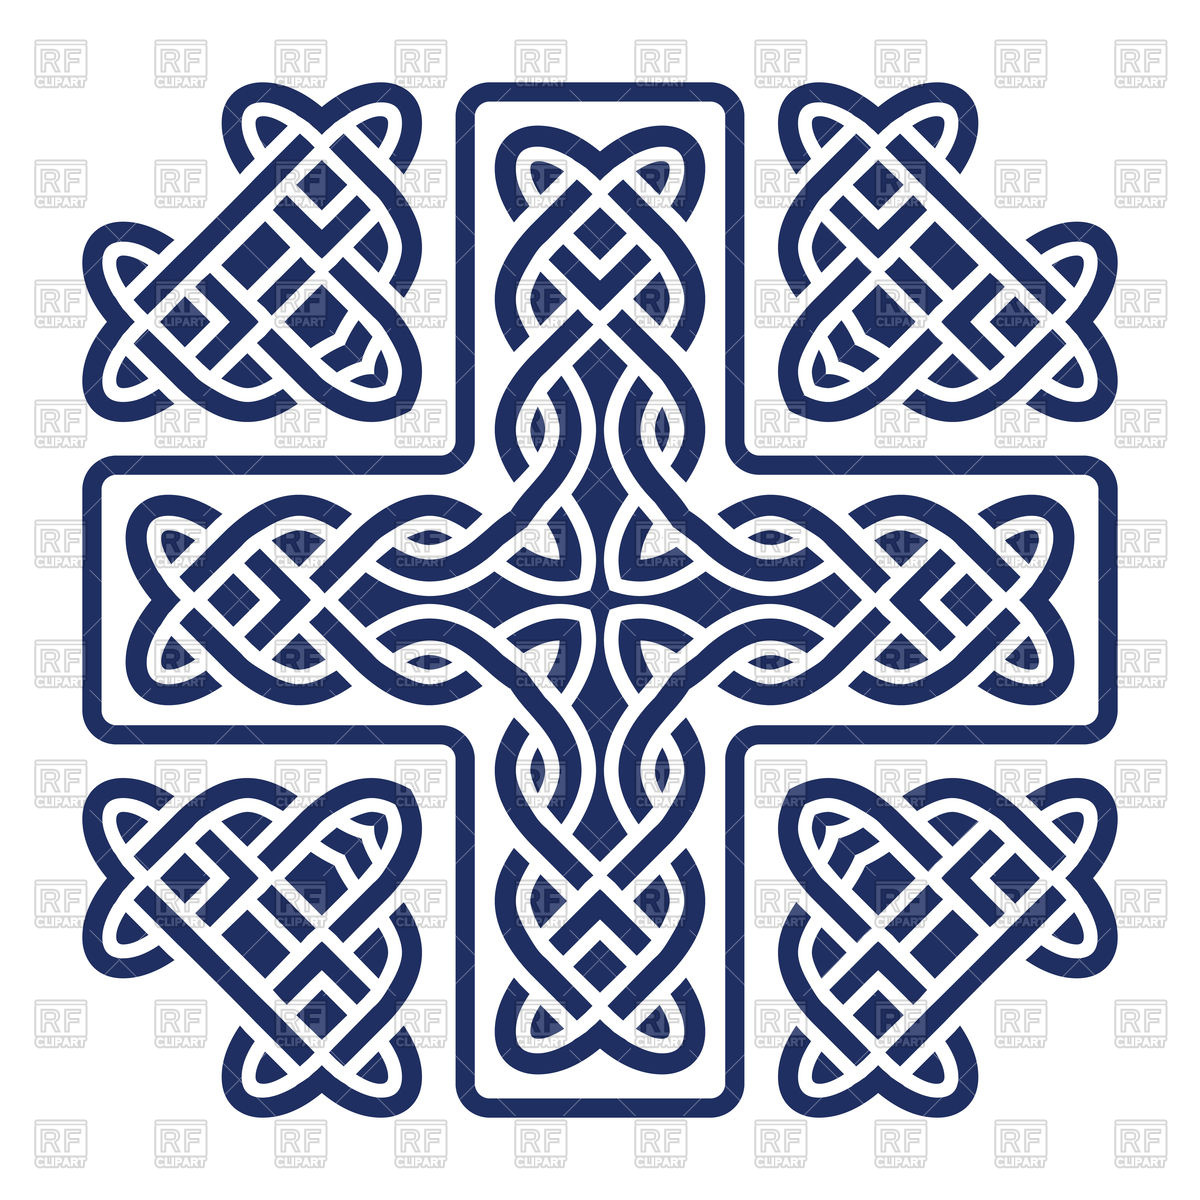 1200x1200 Celtic Knot Cross Tile Vector Image Vector Artwork Of